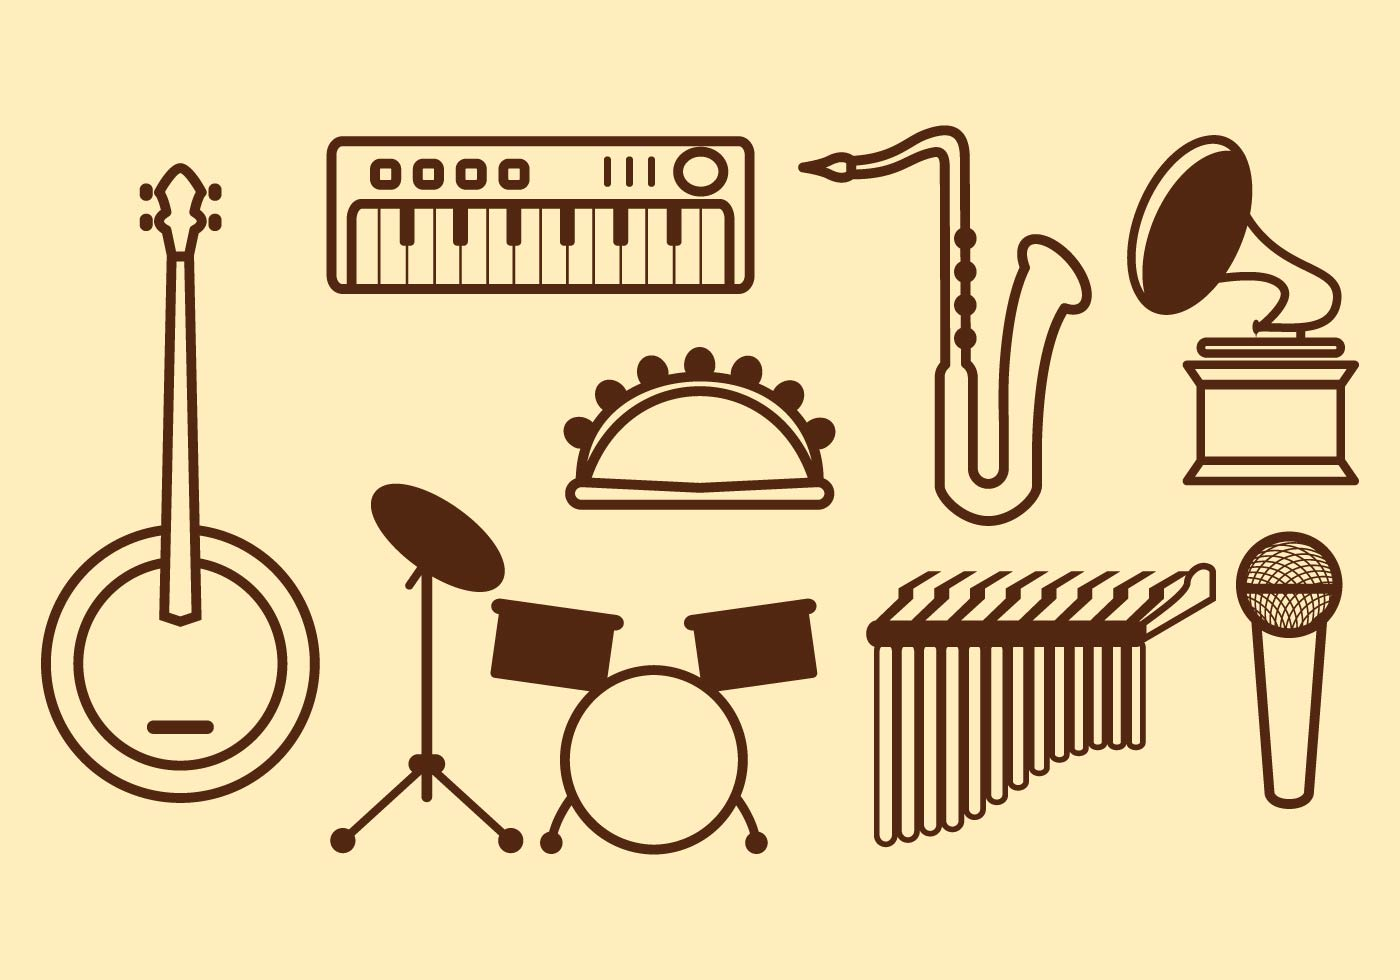 free music vector icon download free vector art  stock headphone vector image free headphone vector free ai